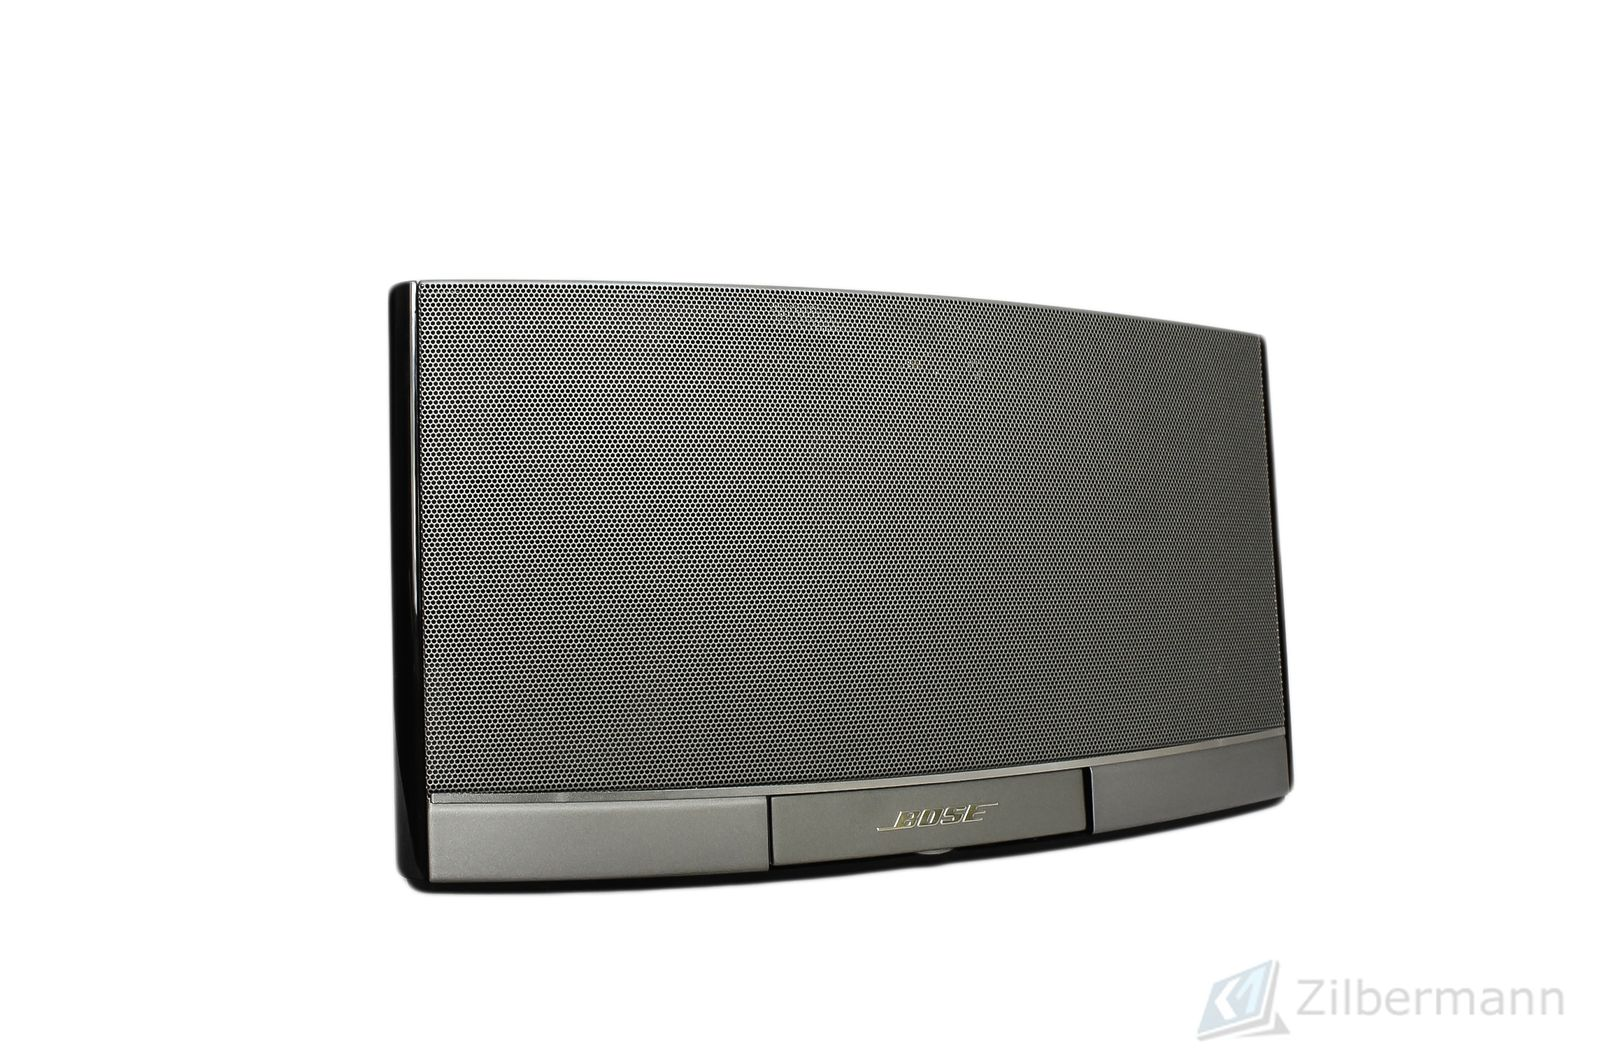 Bose_SoundDock_Portable_Digital_Music_System_03